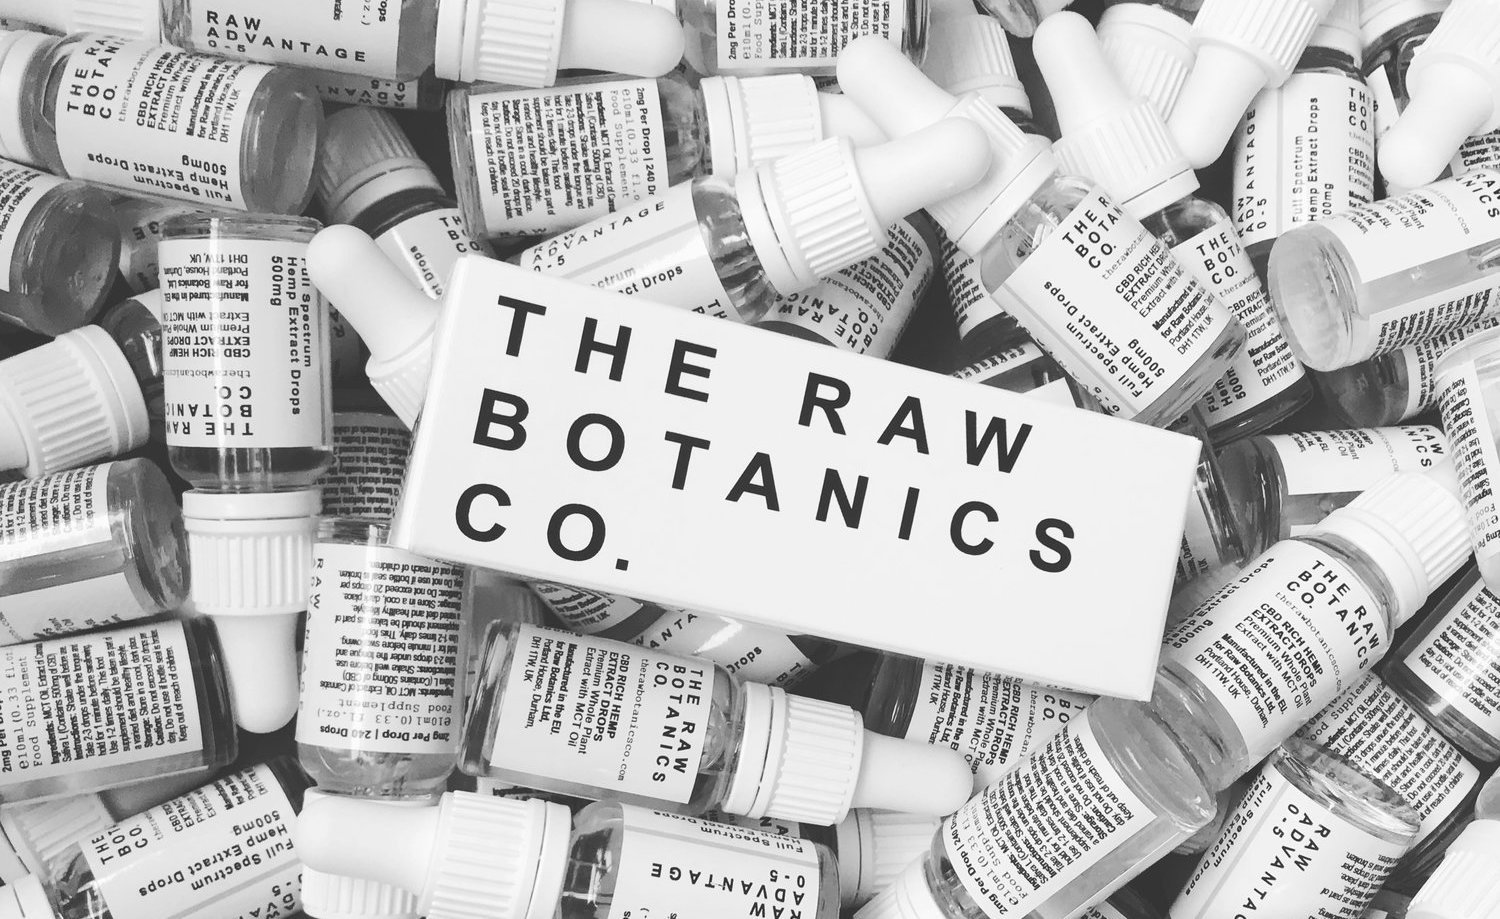 Raw Botanics CBD oil